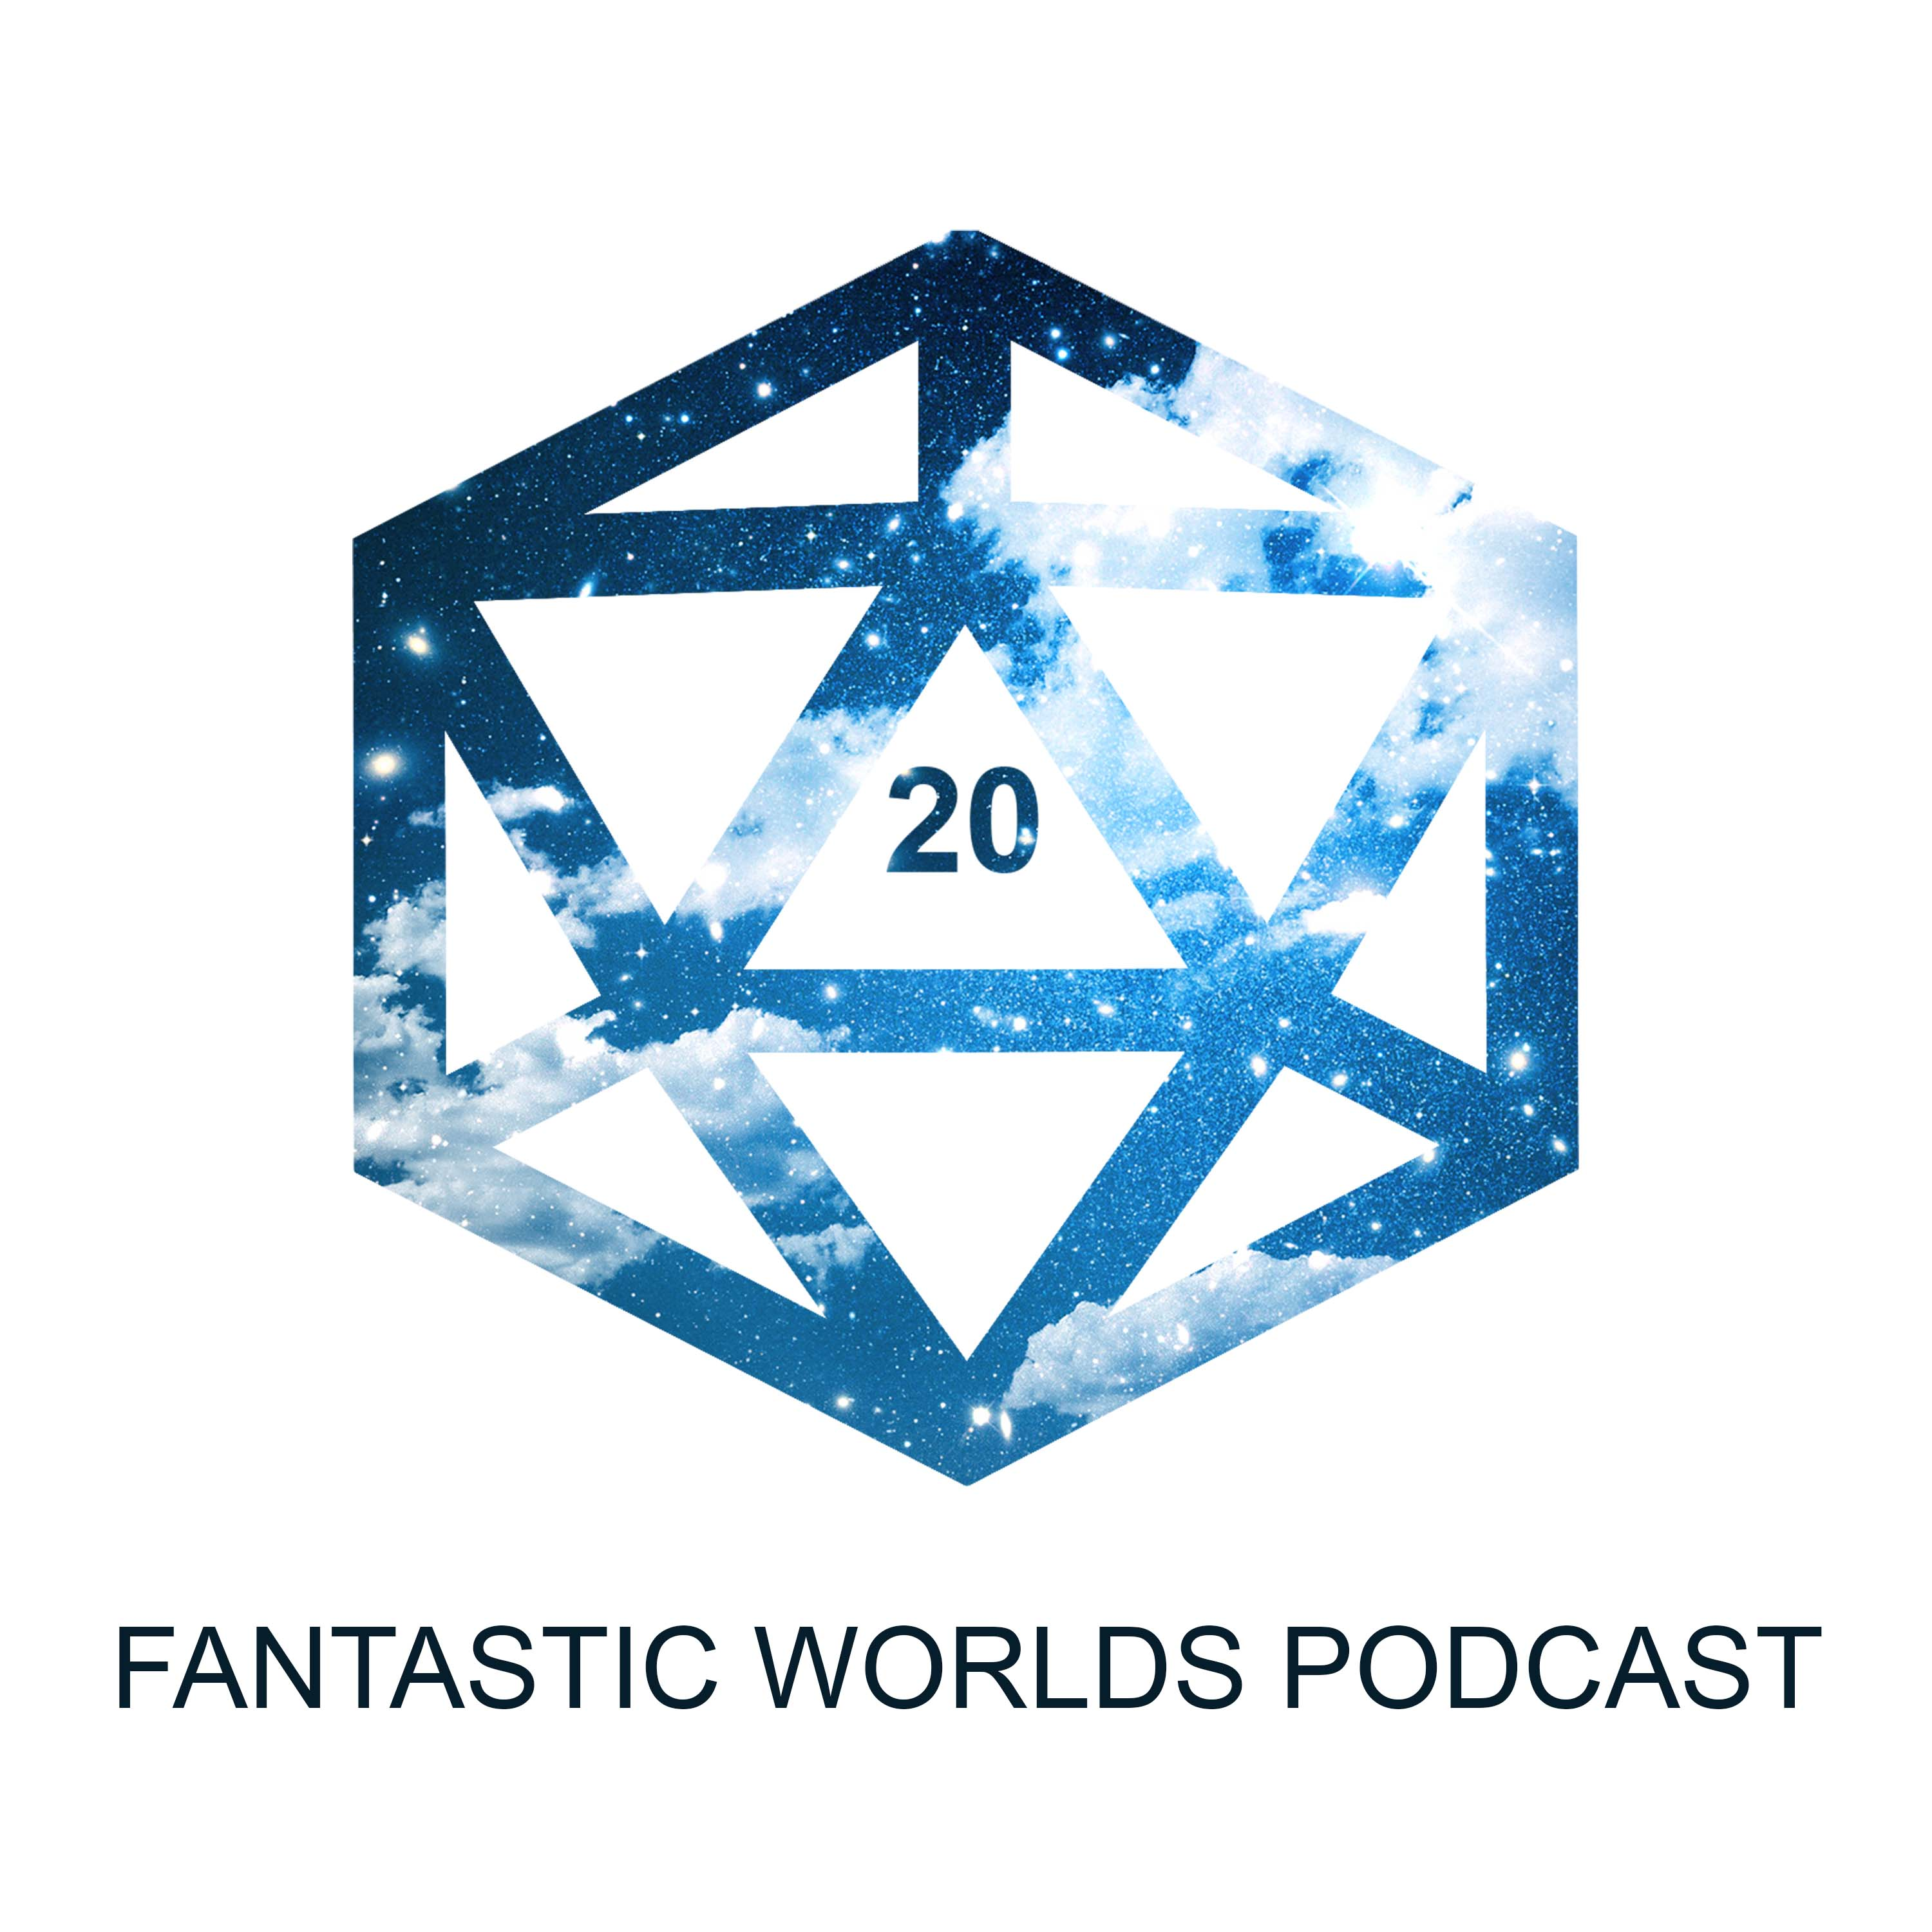 Fantastic Worlds Podcast